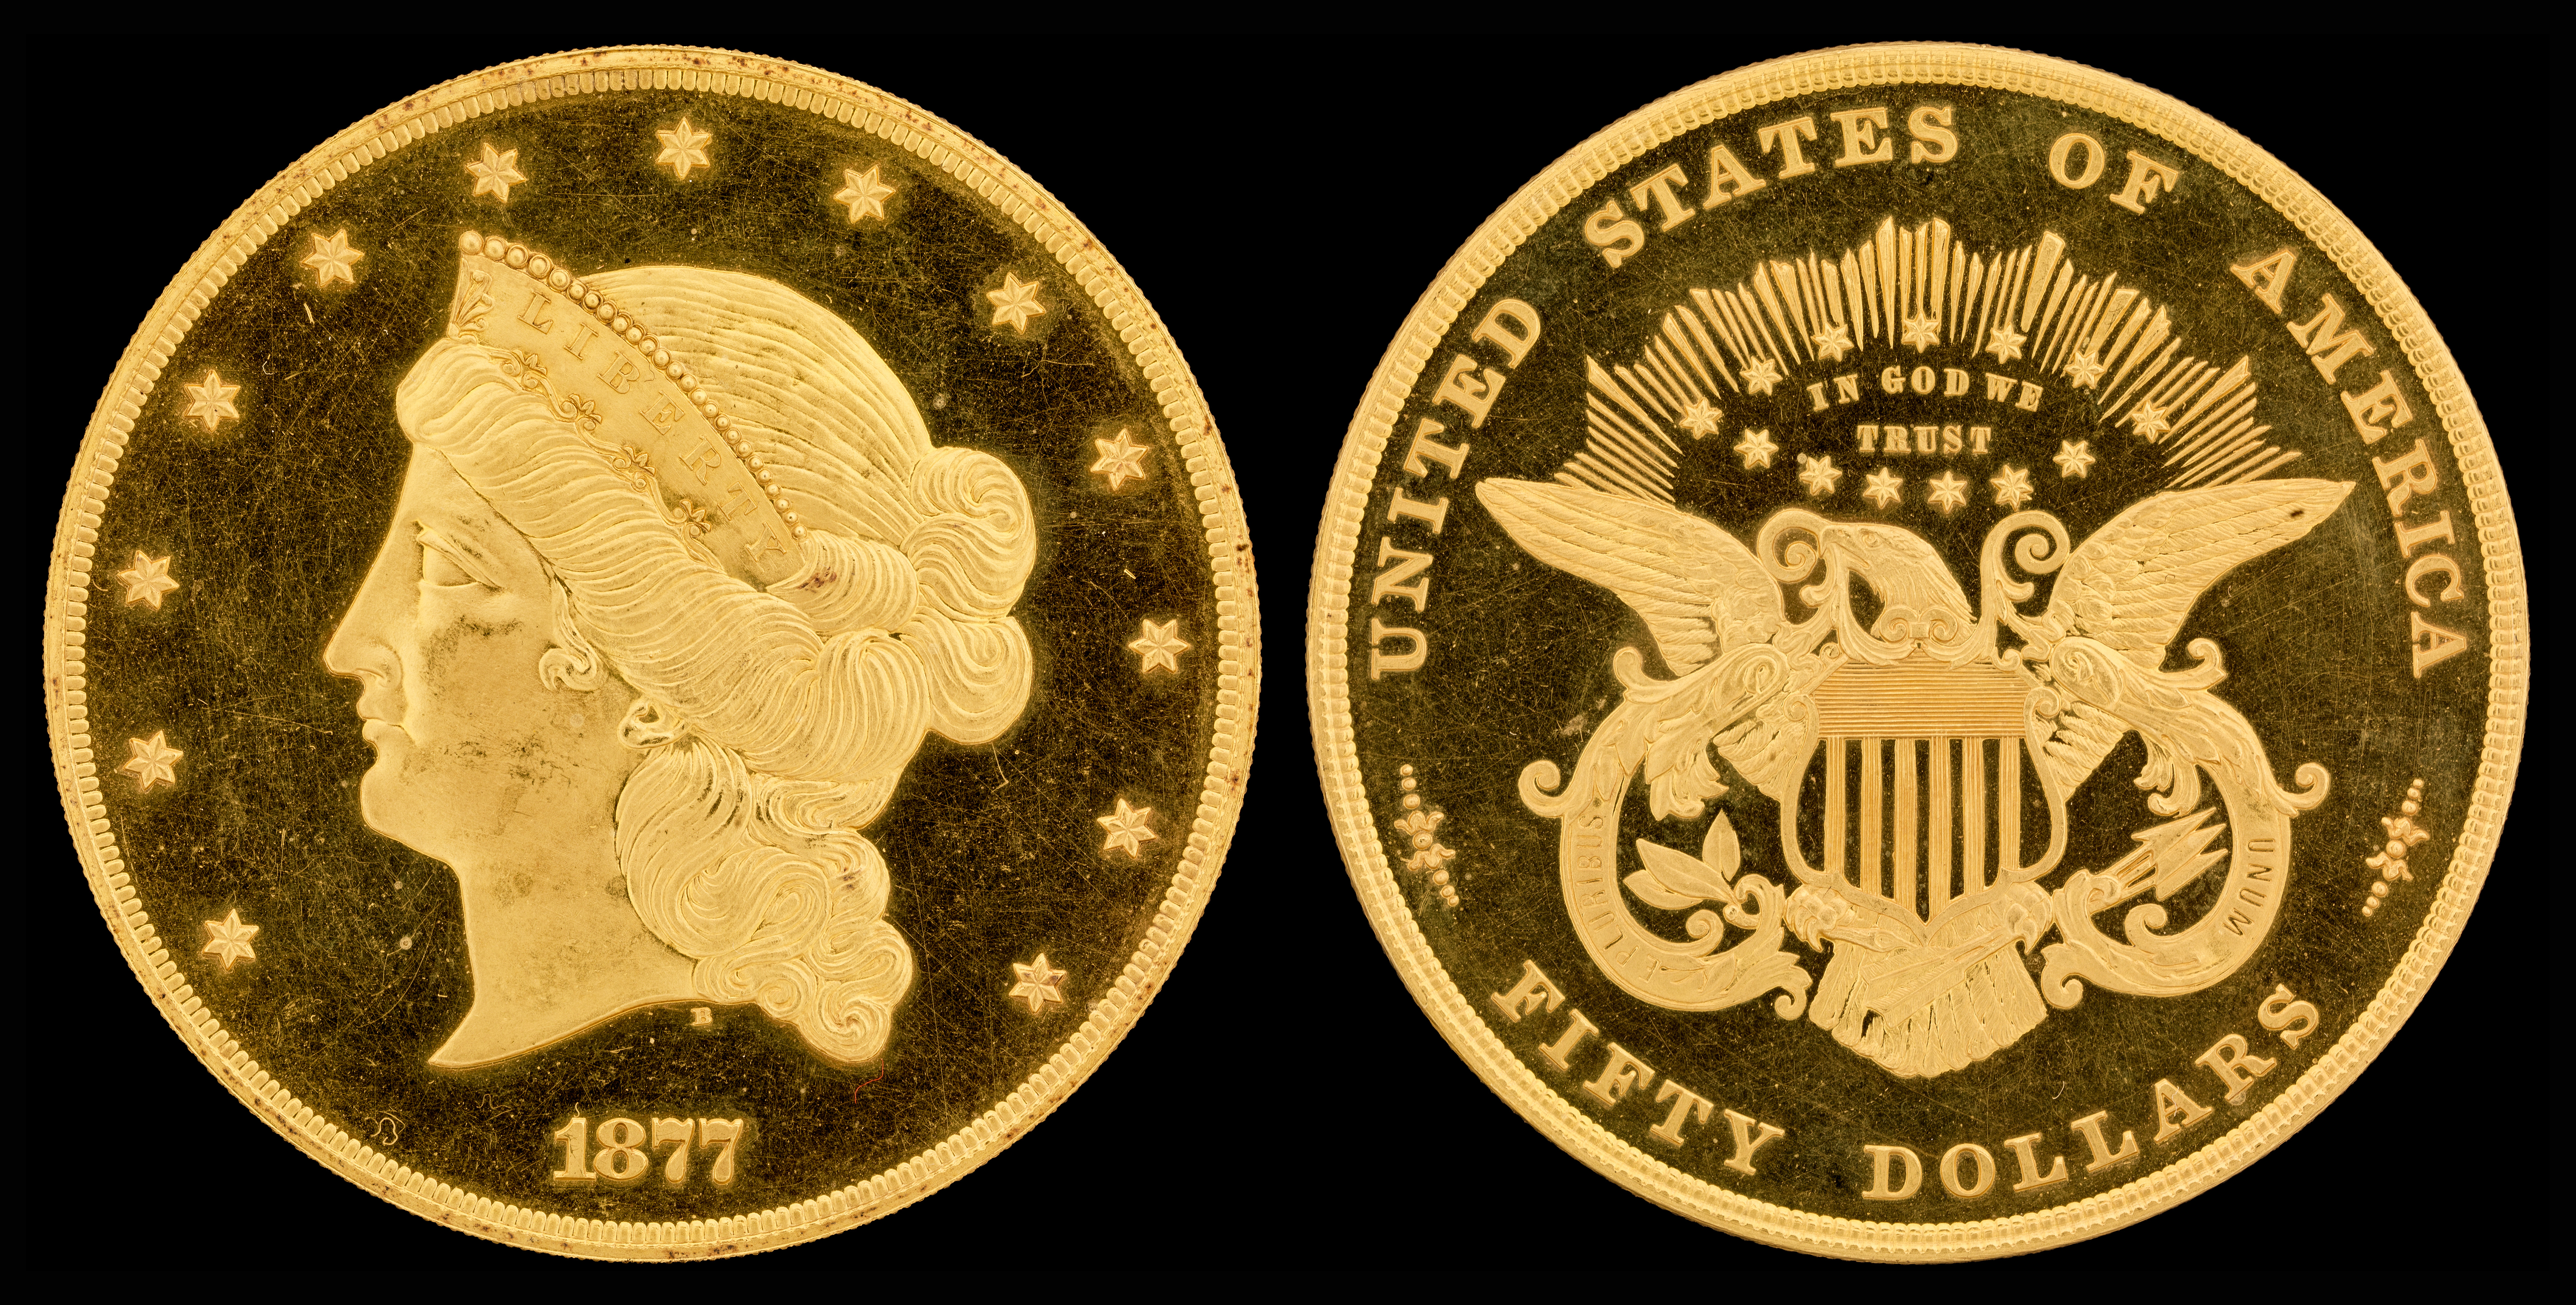 File:NNC-US-1877-G$50-Half Union gold pattern (